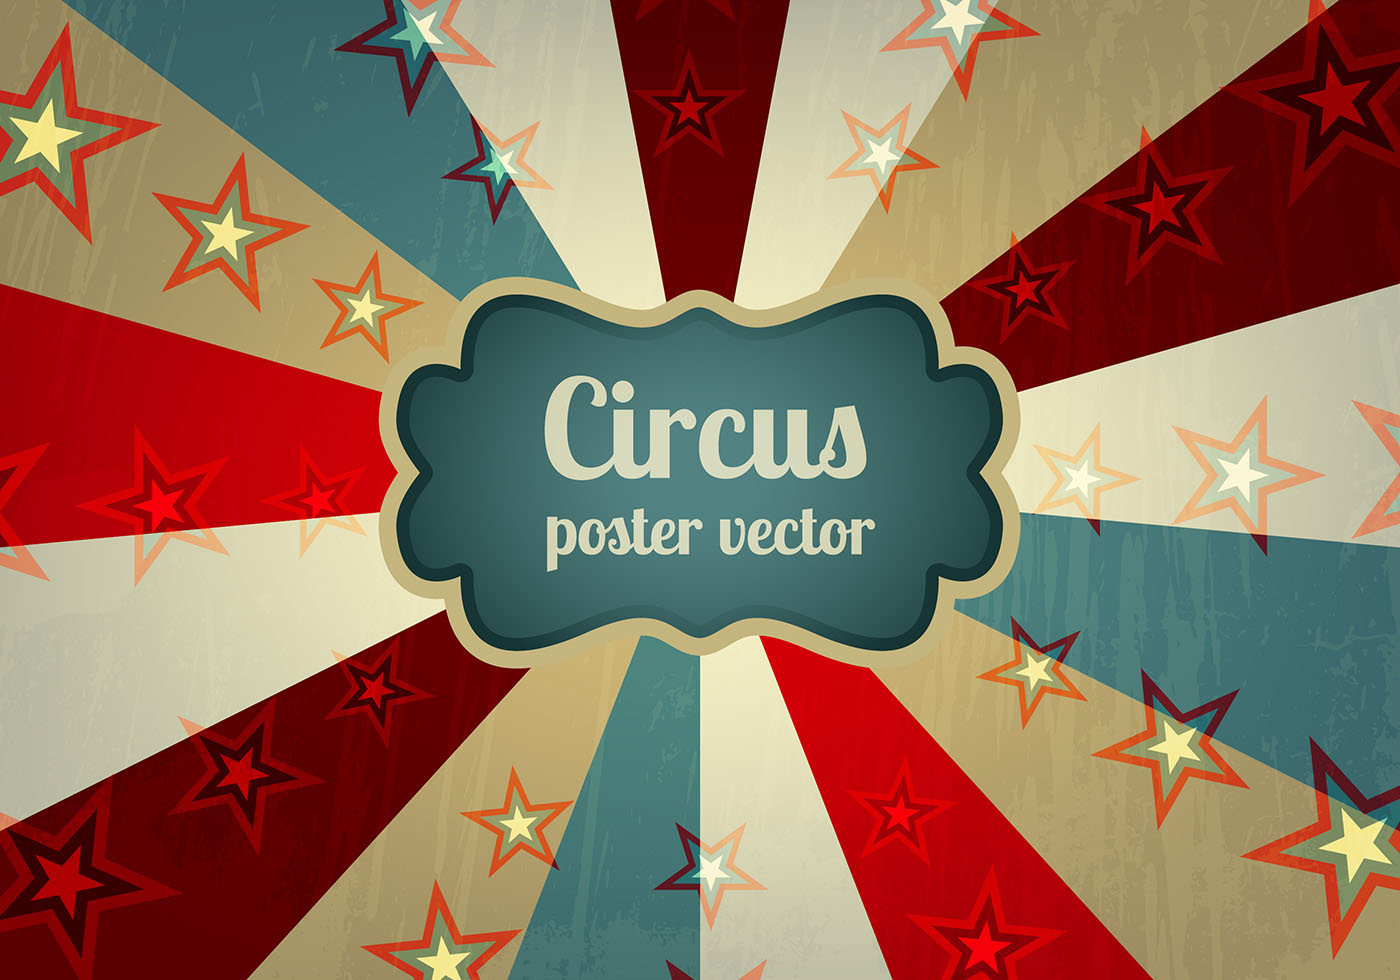 Vintage Circus Poster Free Vector Art - (12397 Free Downloads)